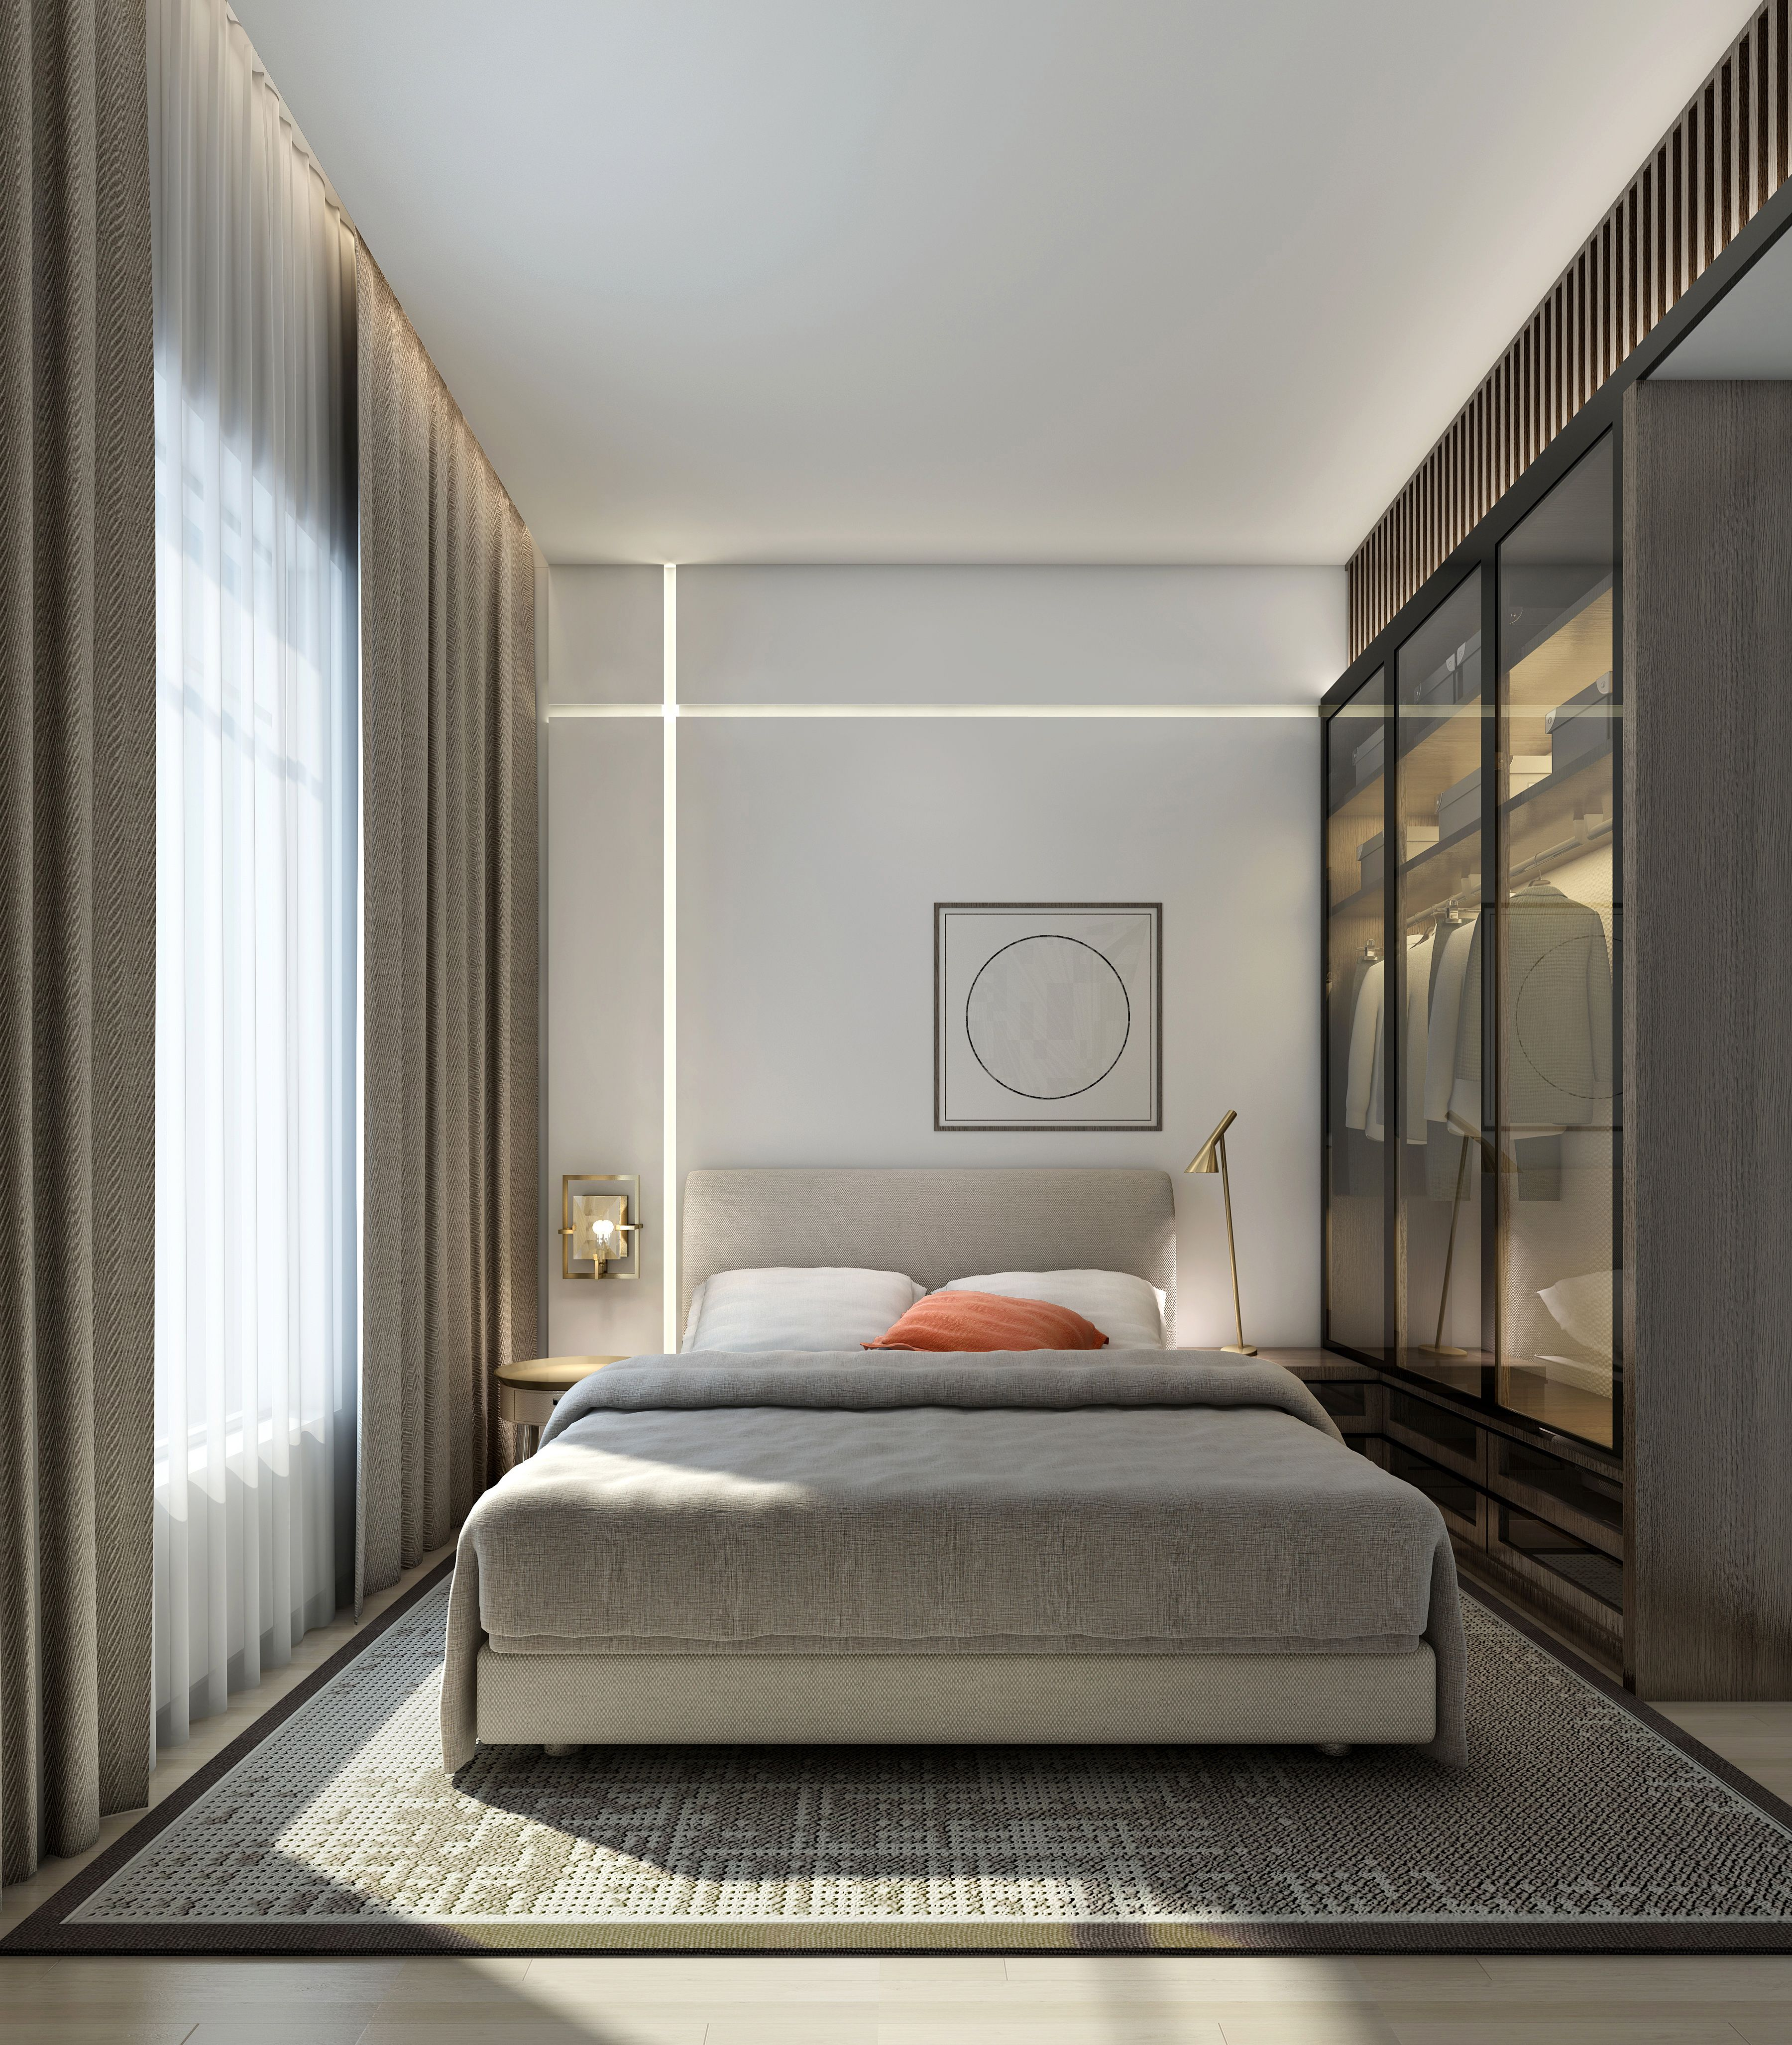 Contemporary Small Apartment Interior Design: Small Apartment Bedroom Decor 121